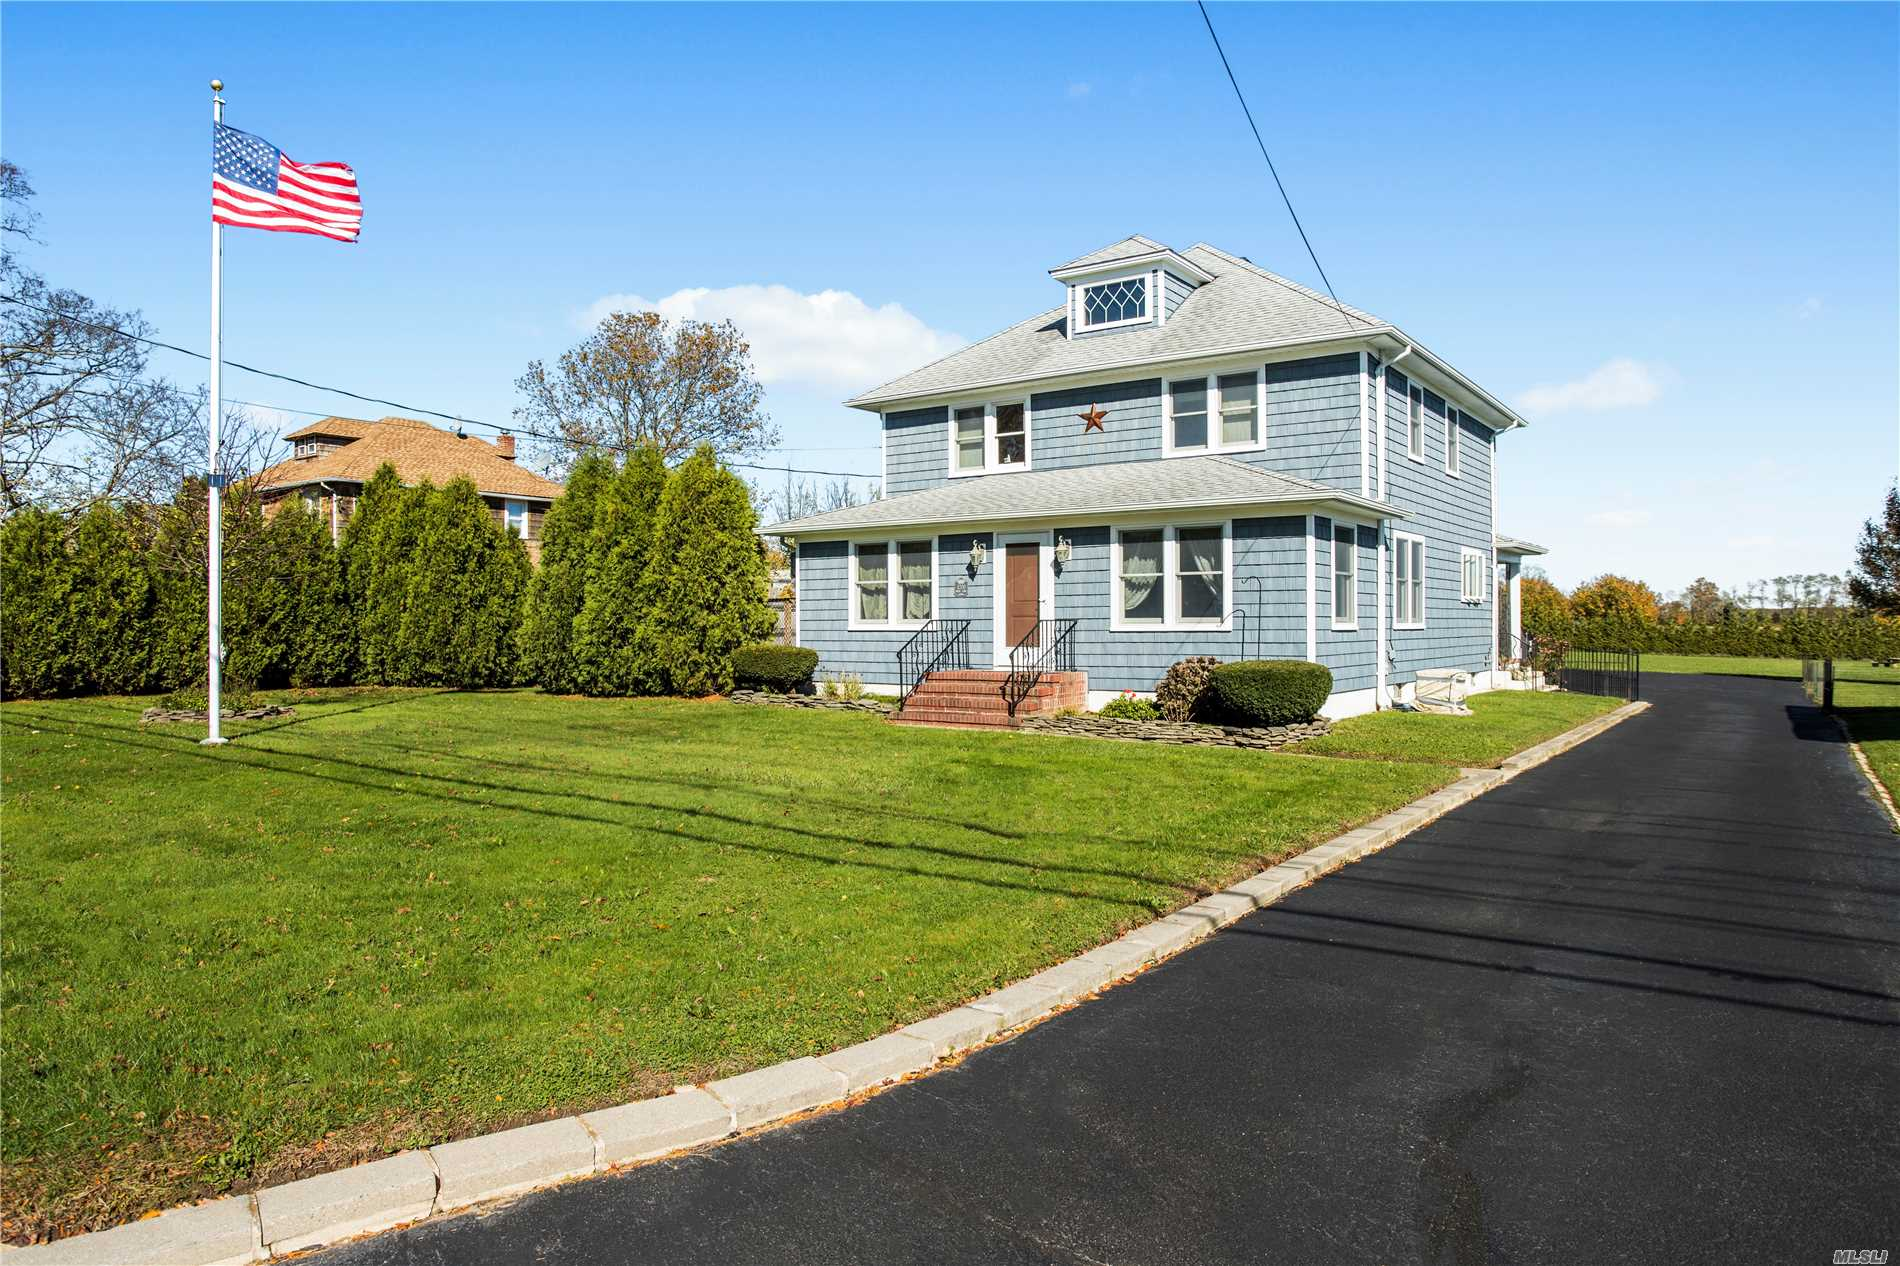 Completely Renovated 1930 Farm House On 1 1/4 Acres In The Heart Of Cutchogue. All Large Rooms. Hardwood Floors Throughout. Formal Living Room With Fireplace, Finished Walk Up Attic, Gorgeous New Kitchen. Anderson Windows. Detached 2 1/2 Car Garage With Loft